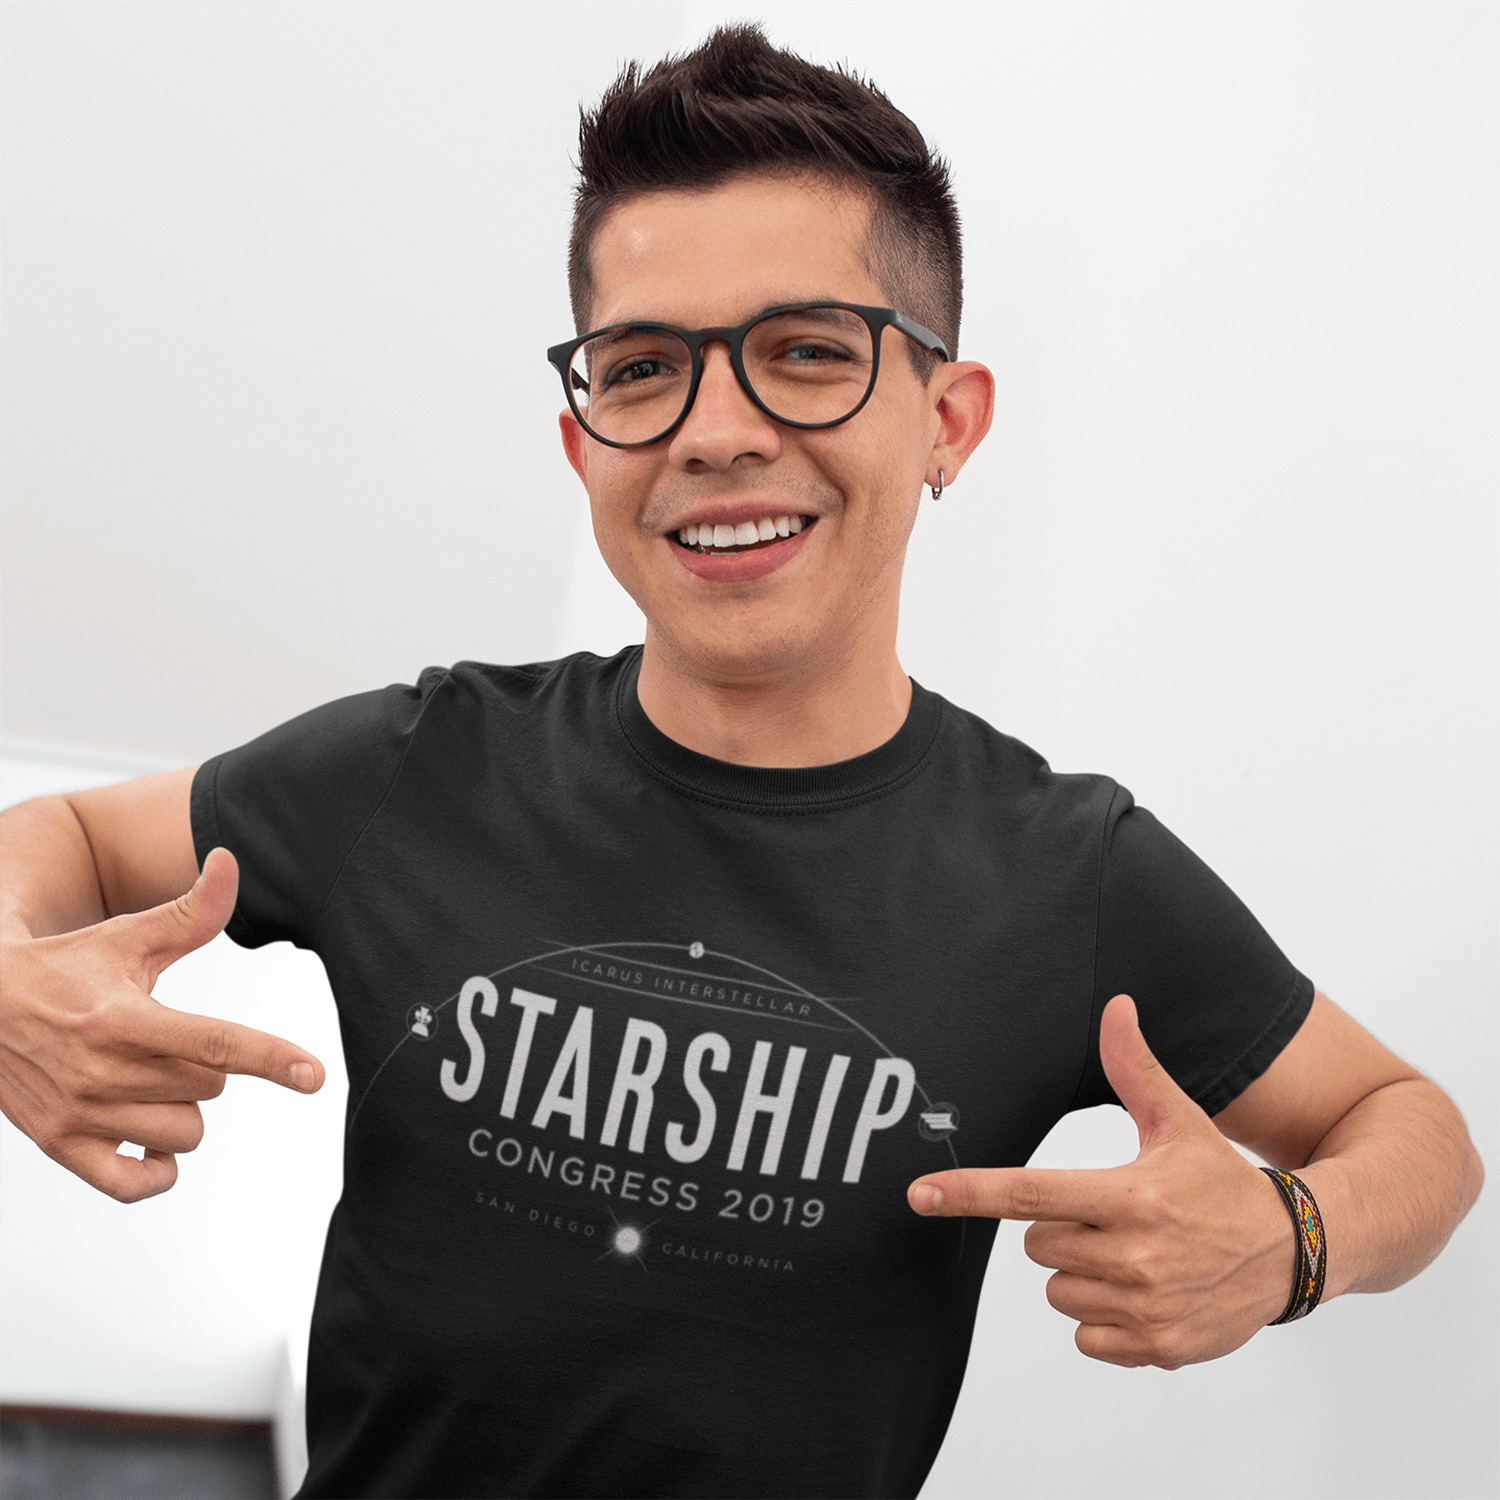 Starship Congress T-shirt for Icarus Interstellar